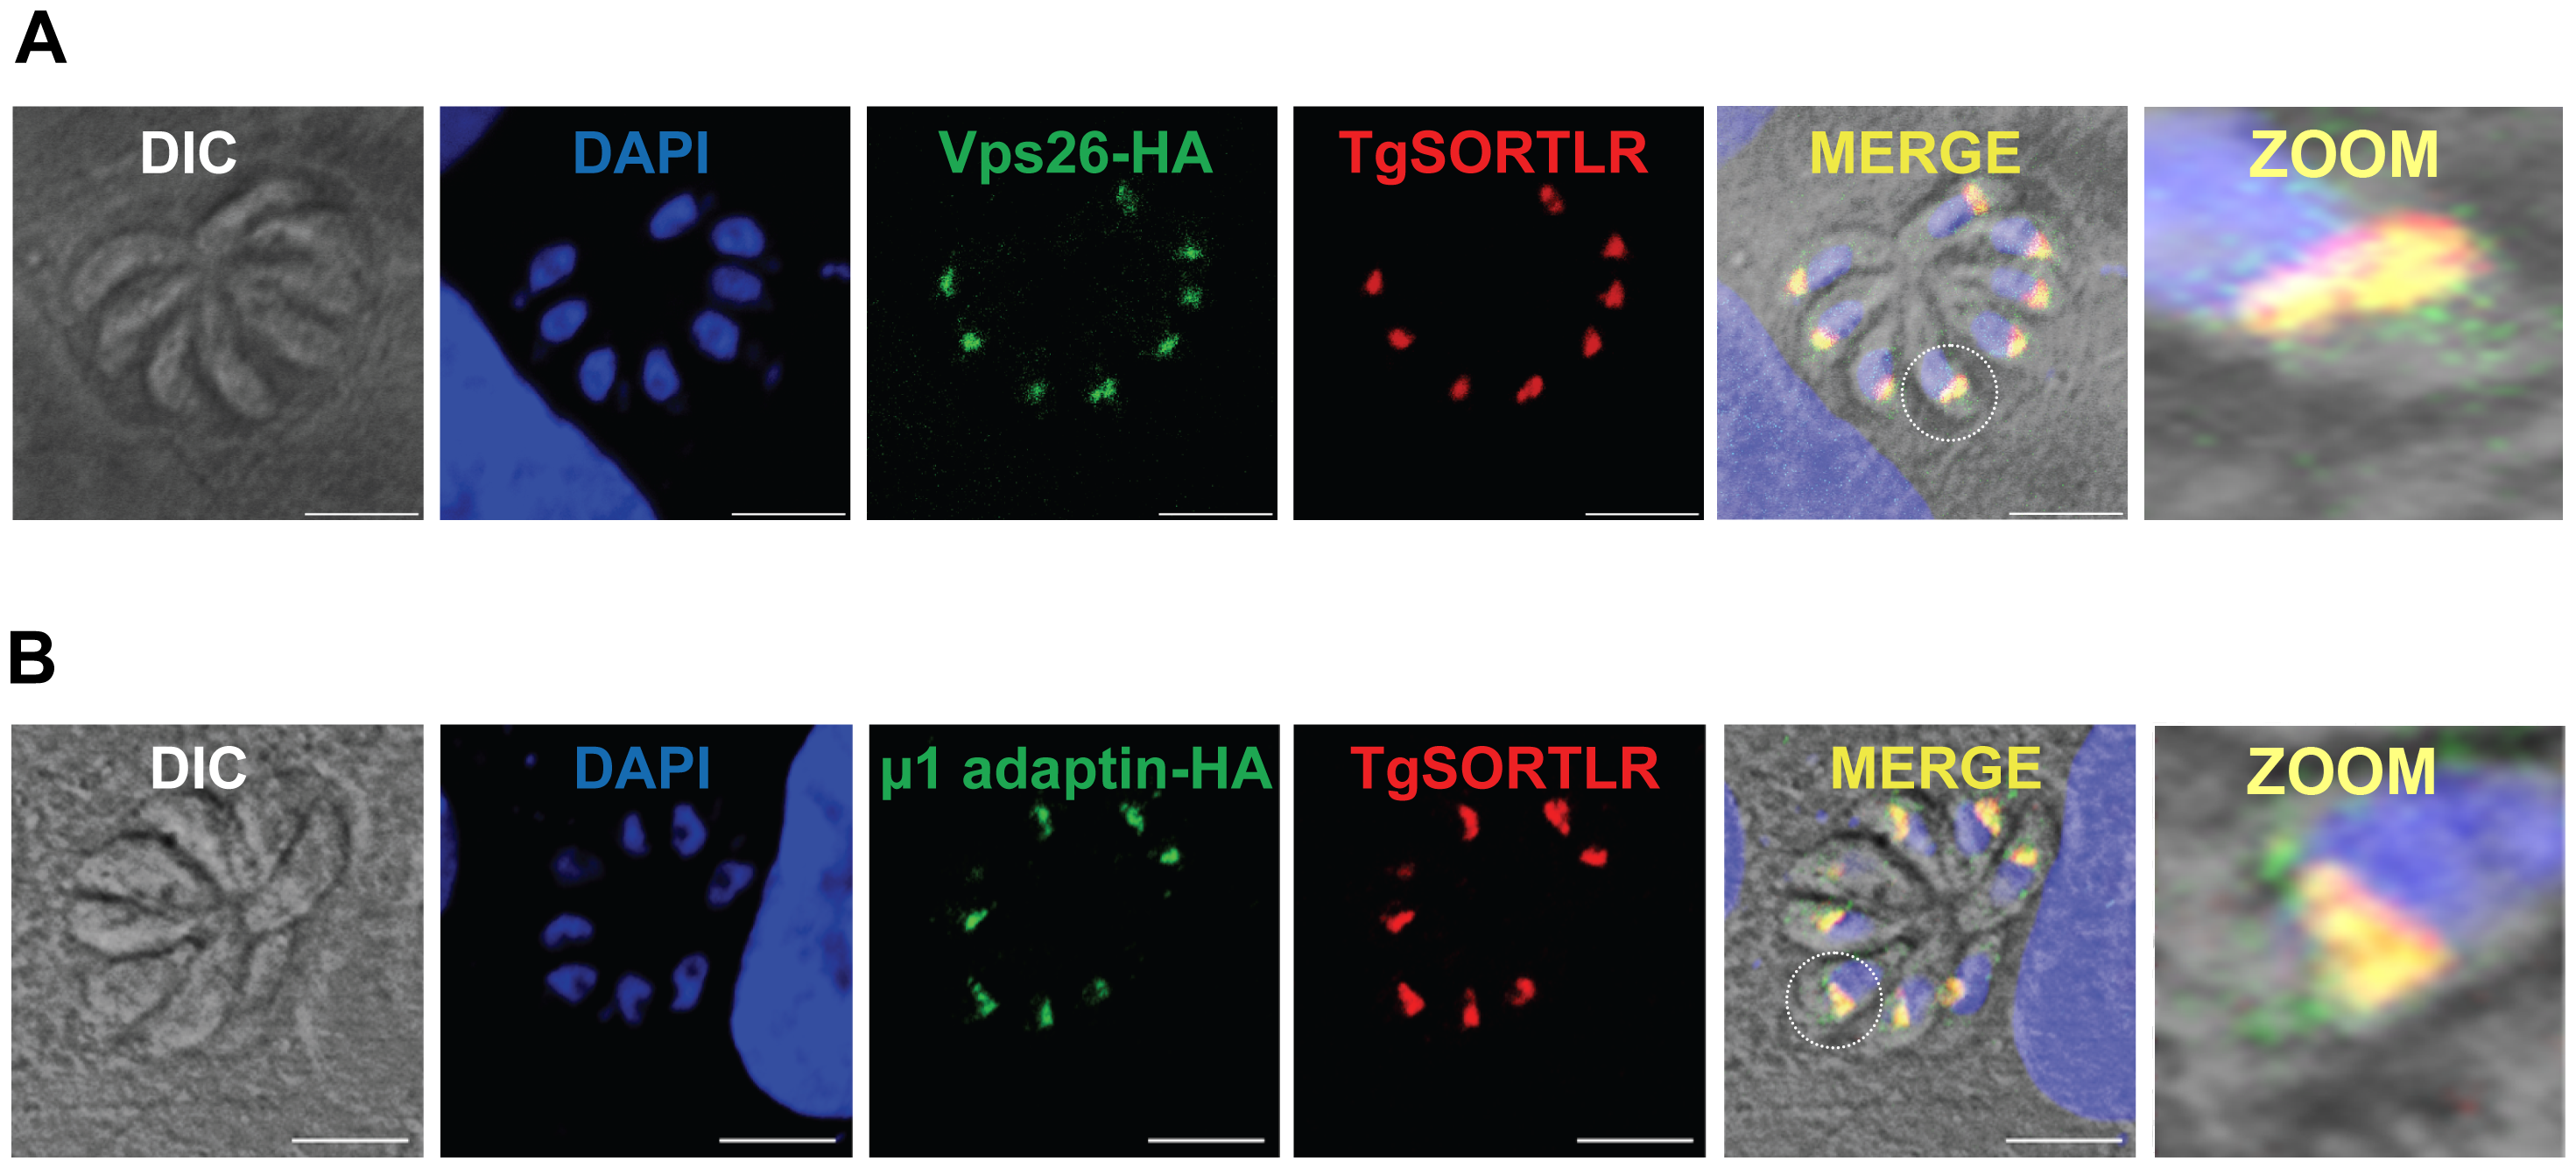 TgSORTLR co-localizes with TgVsp26 and Tgμ1-adpatin.